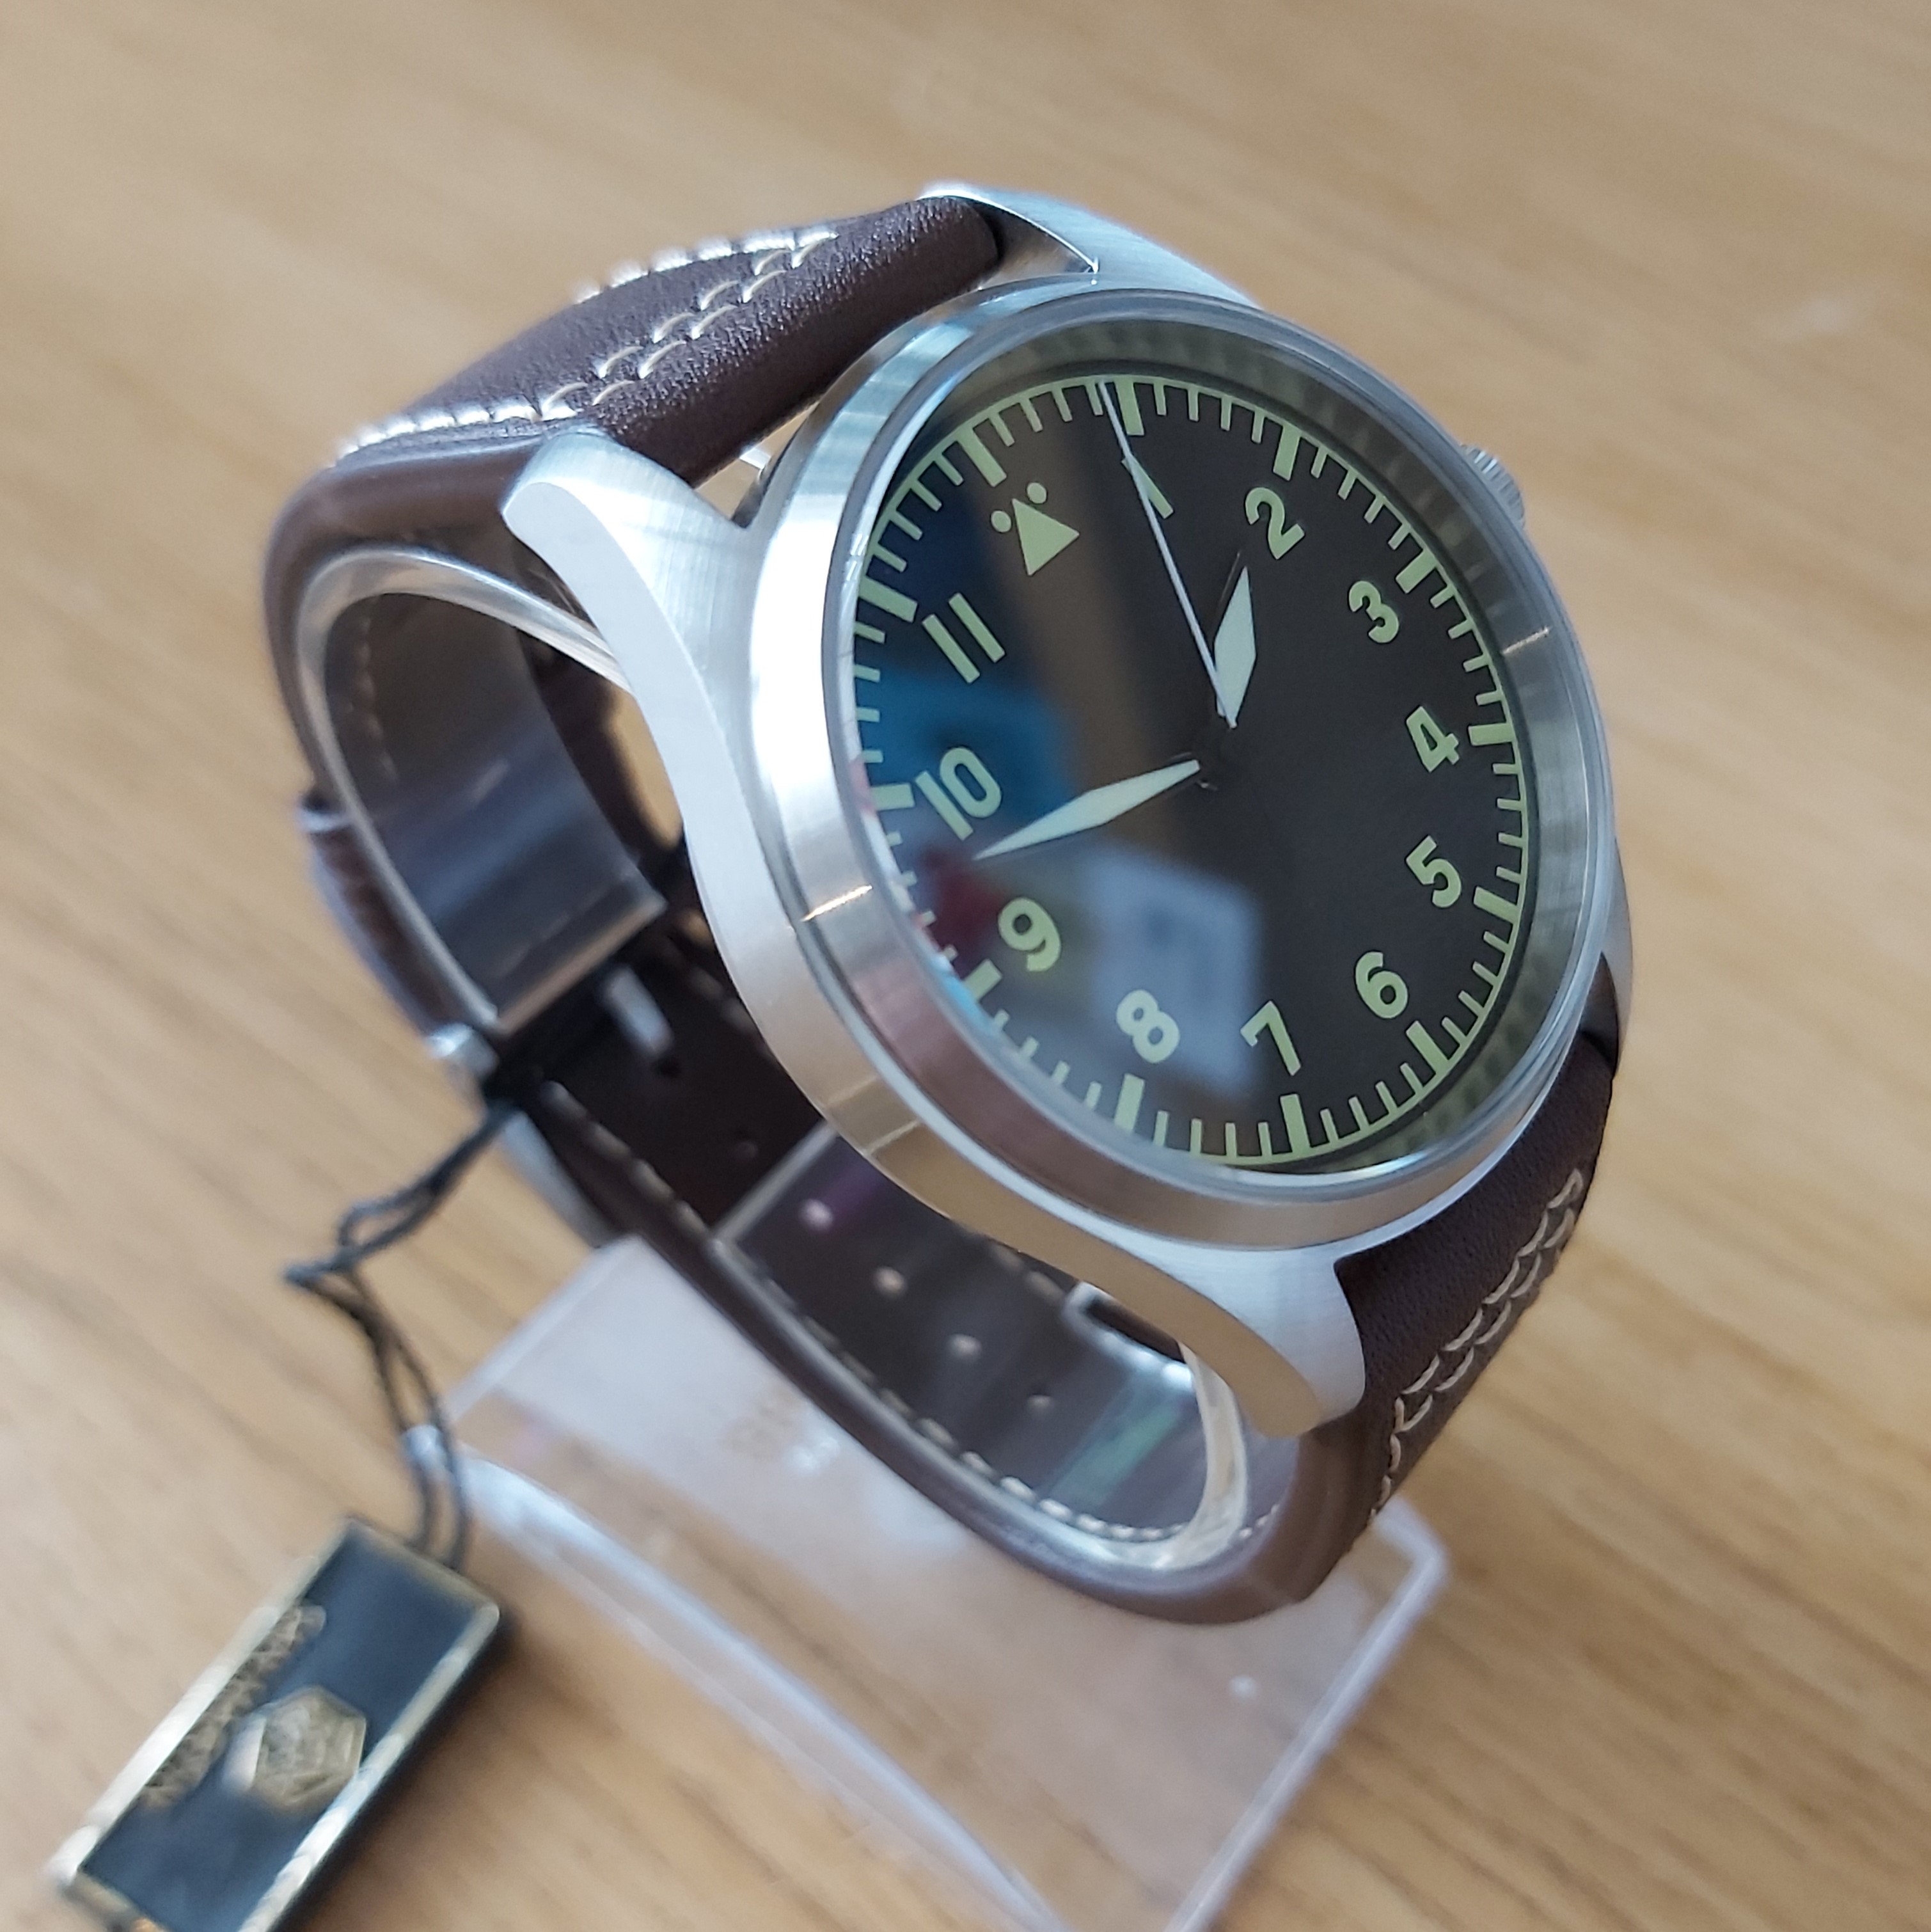 San Martin SN030-G Flieger-A Pilot's Series Watch